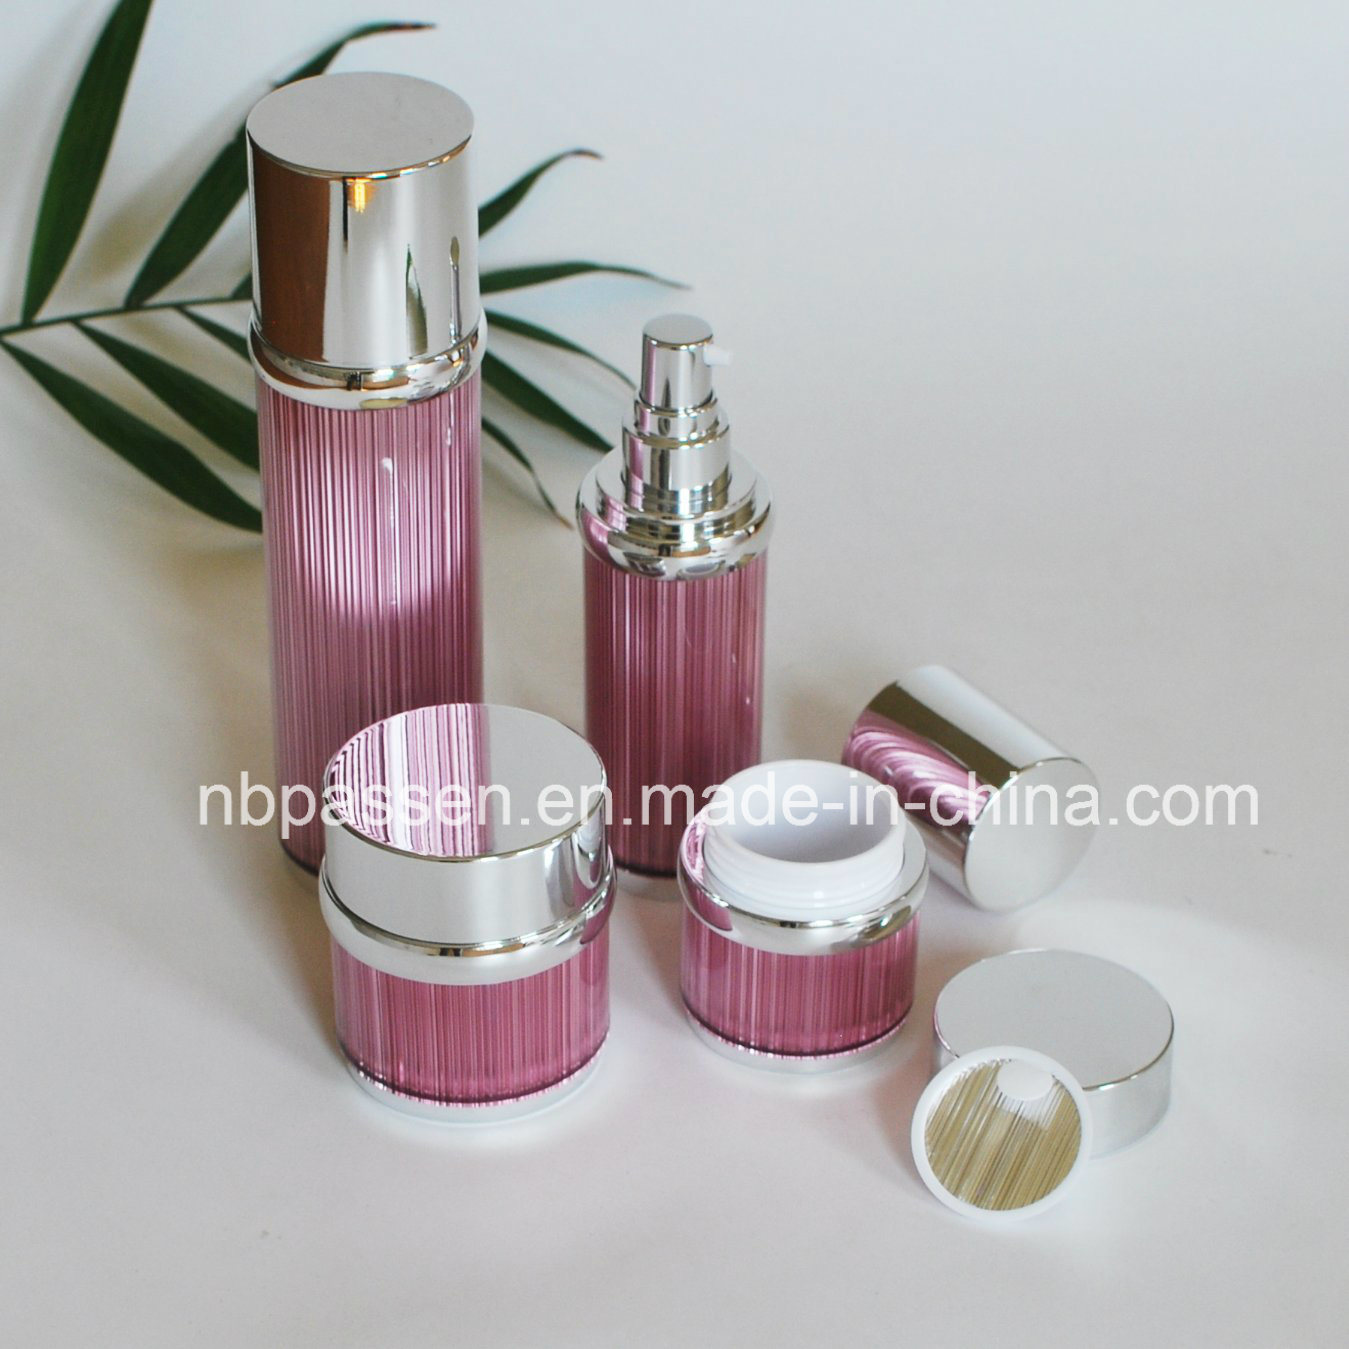 New Pink Acrylic Cream Jar Lotion Bottle for Cosmetics (PPC-NEW-104)